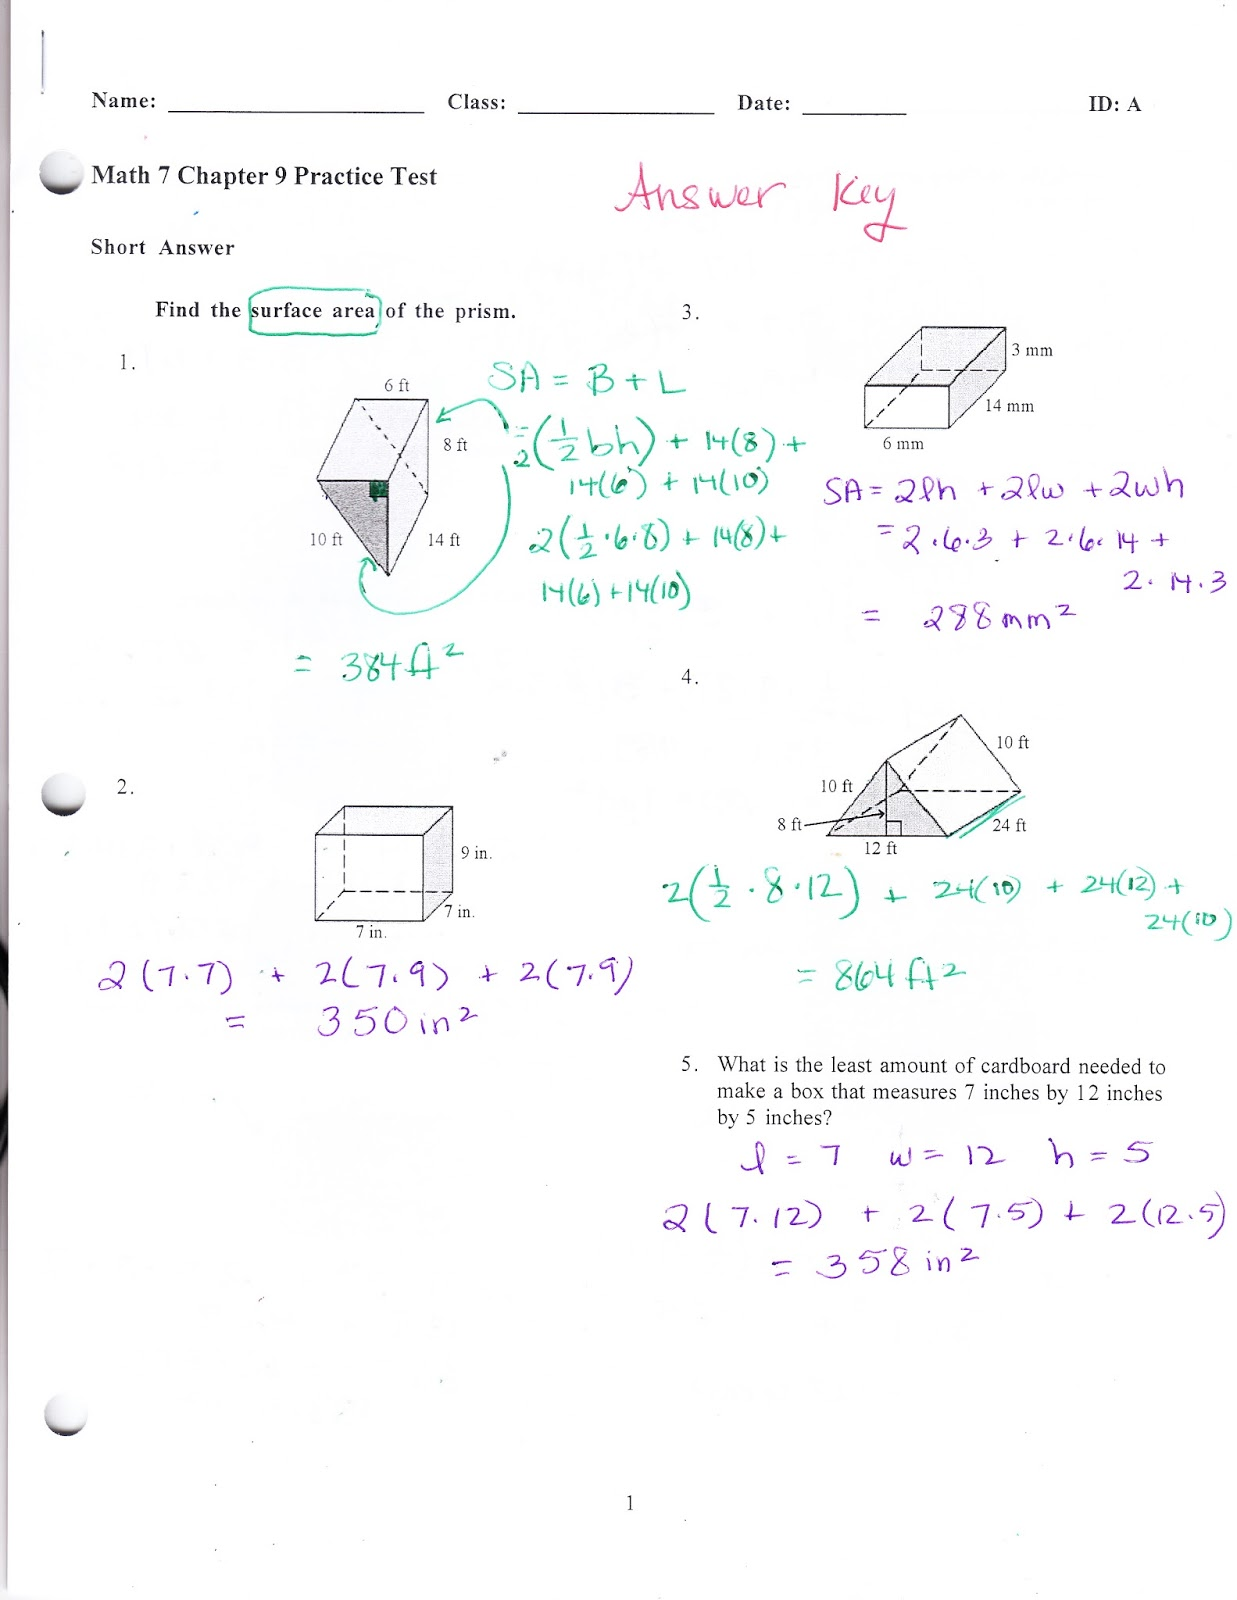 Ms  Jean's Classroom Blog: Math 7 Chapter 9 Practice Test Answers